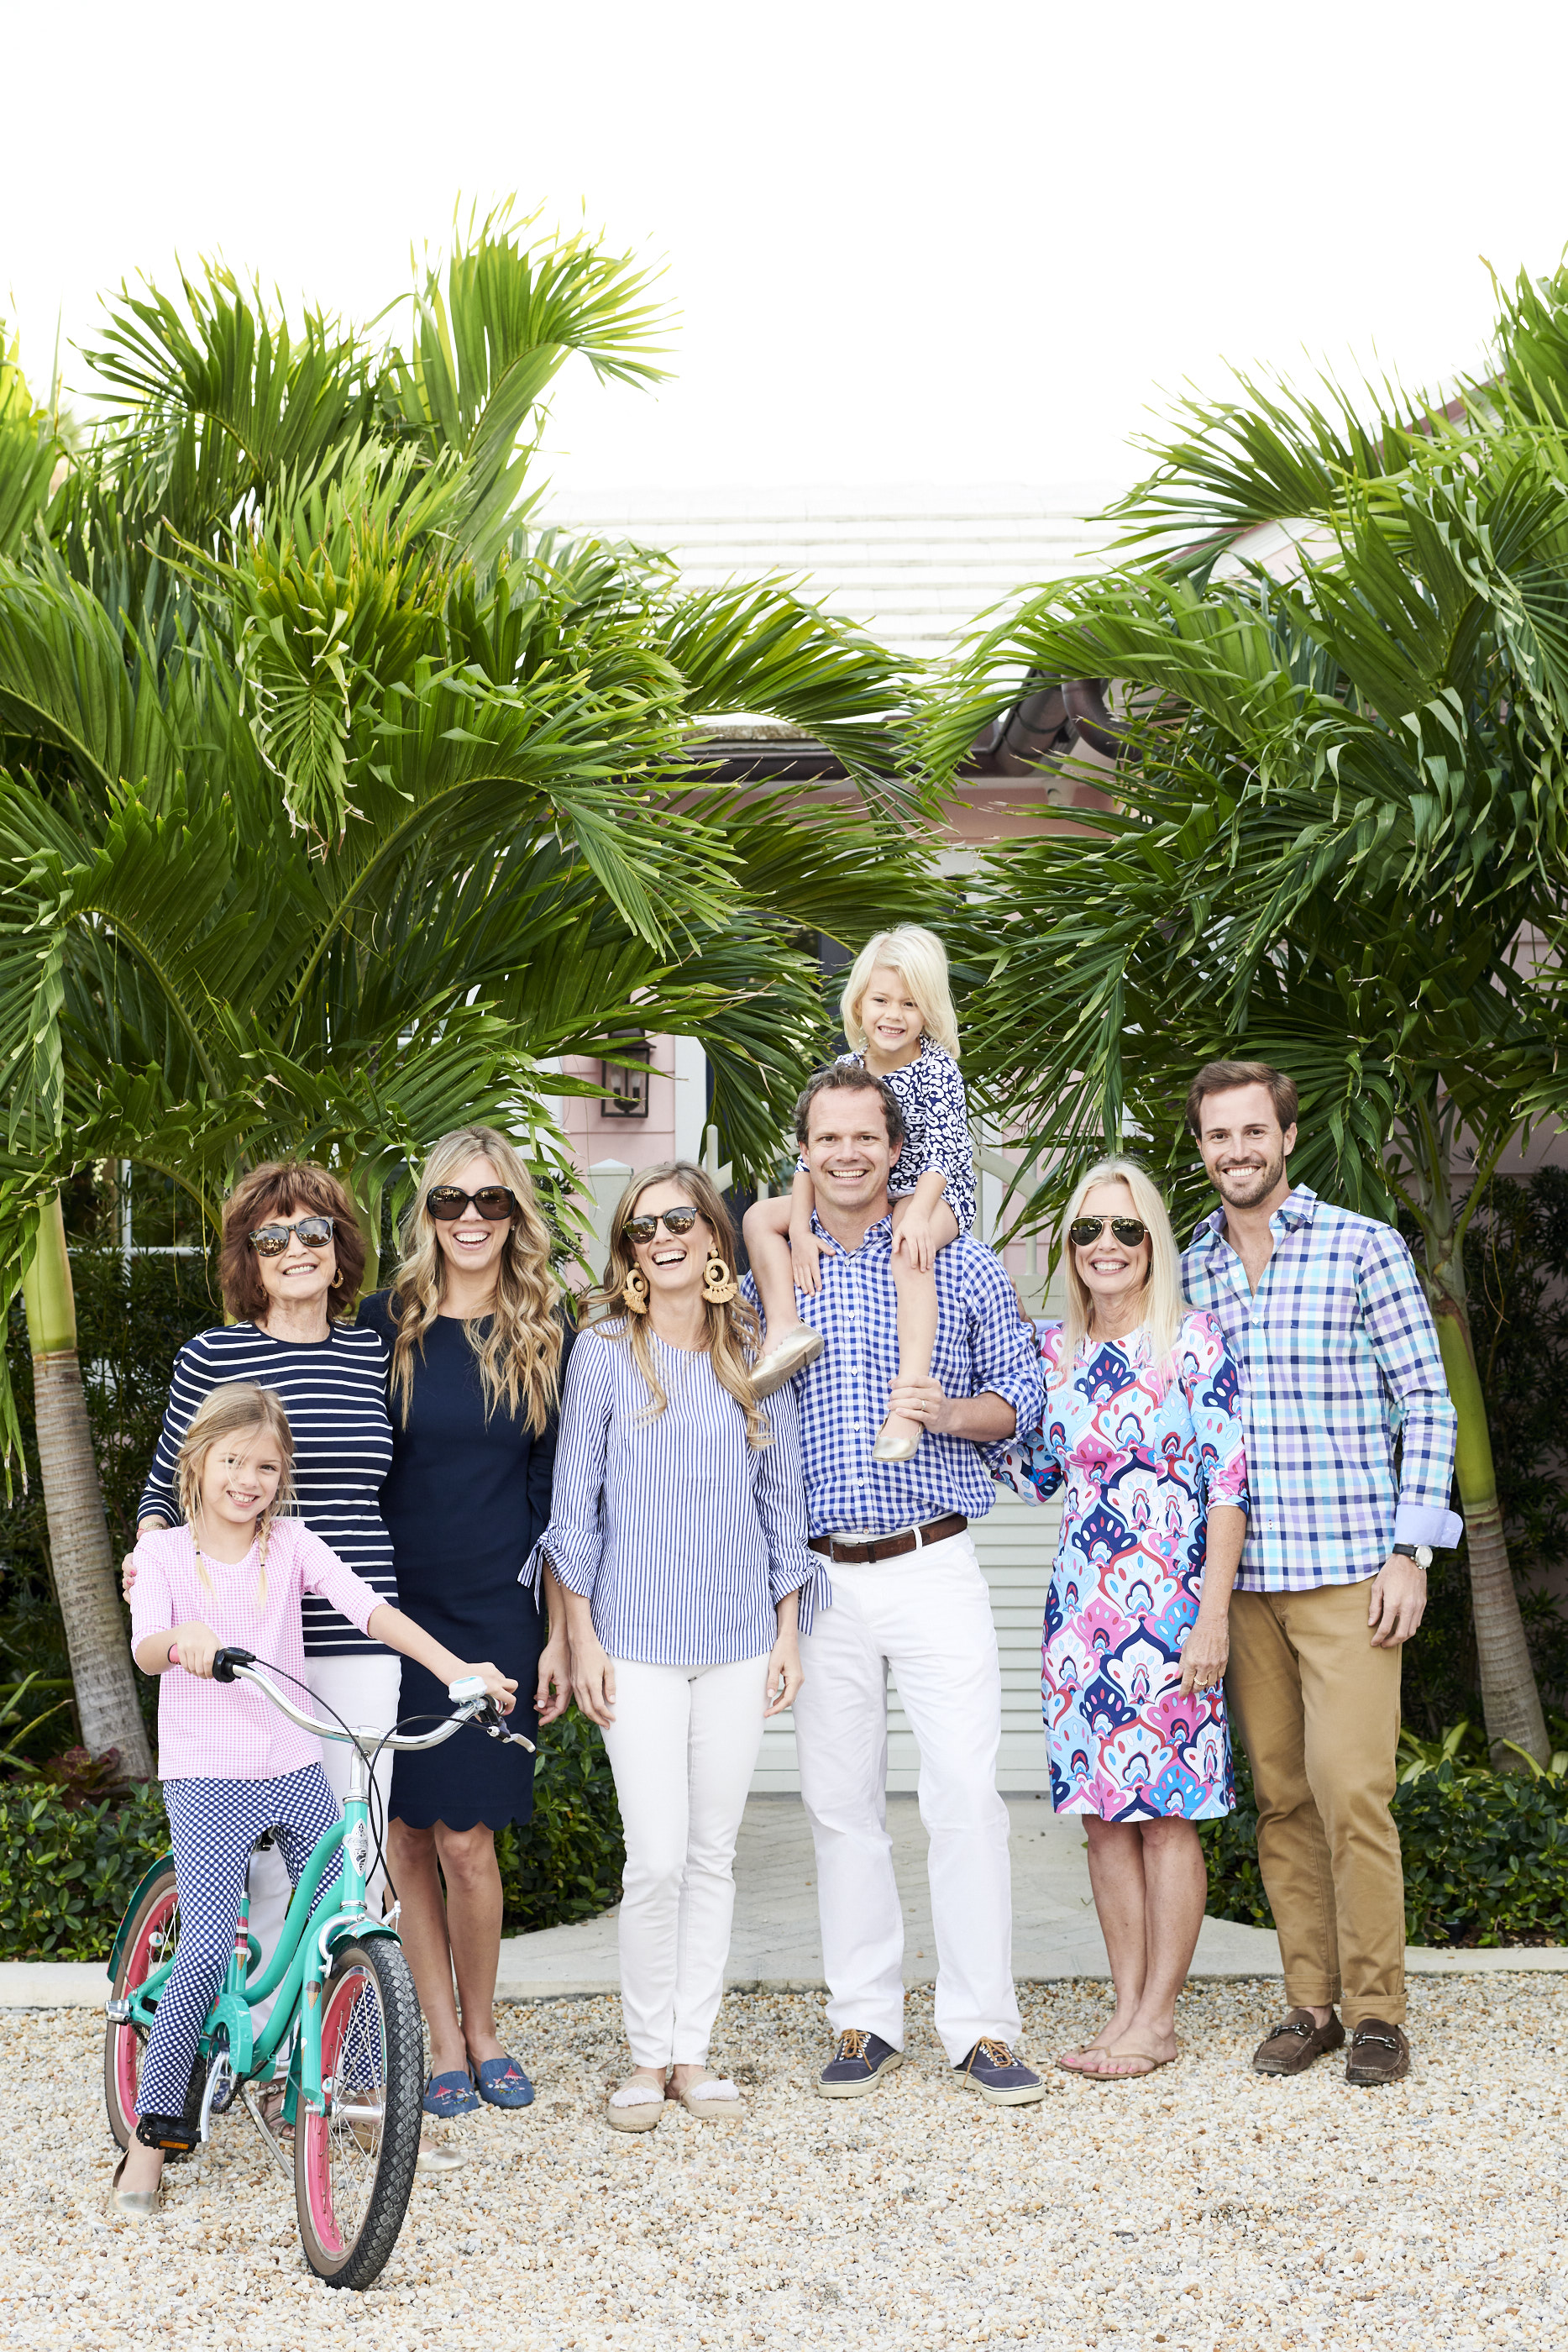 Fashion: J.McLaughlin Life with Palm Beach Lately